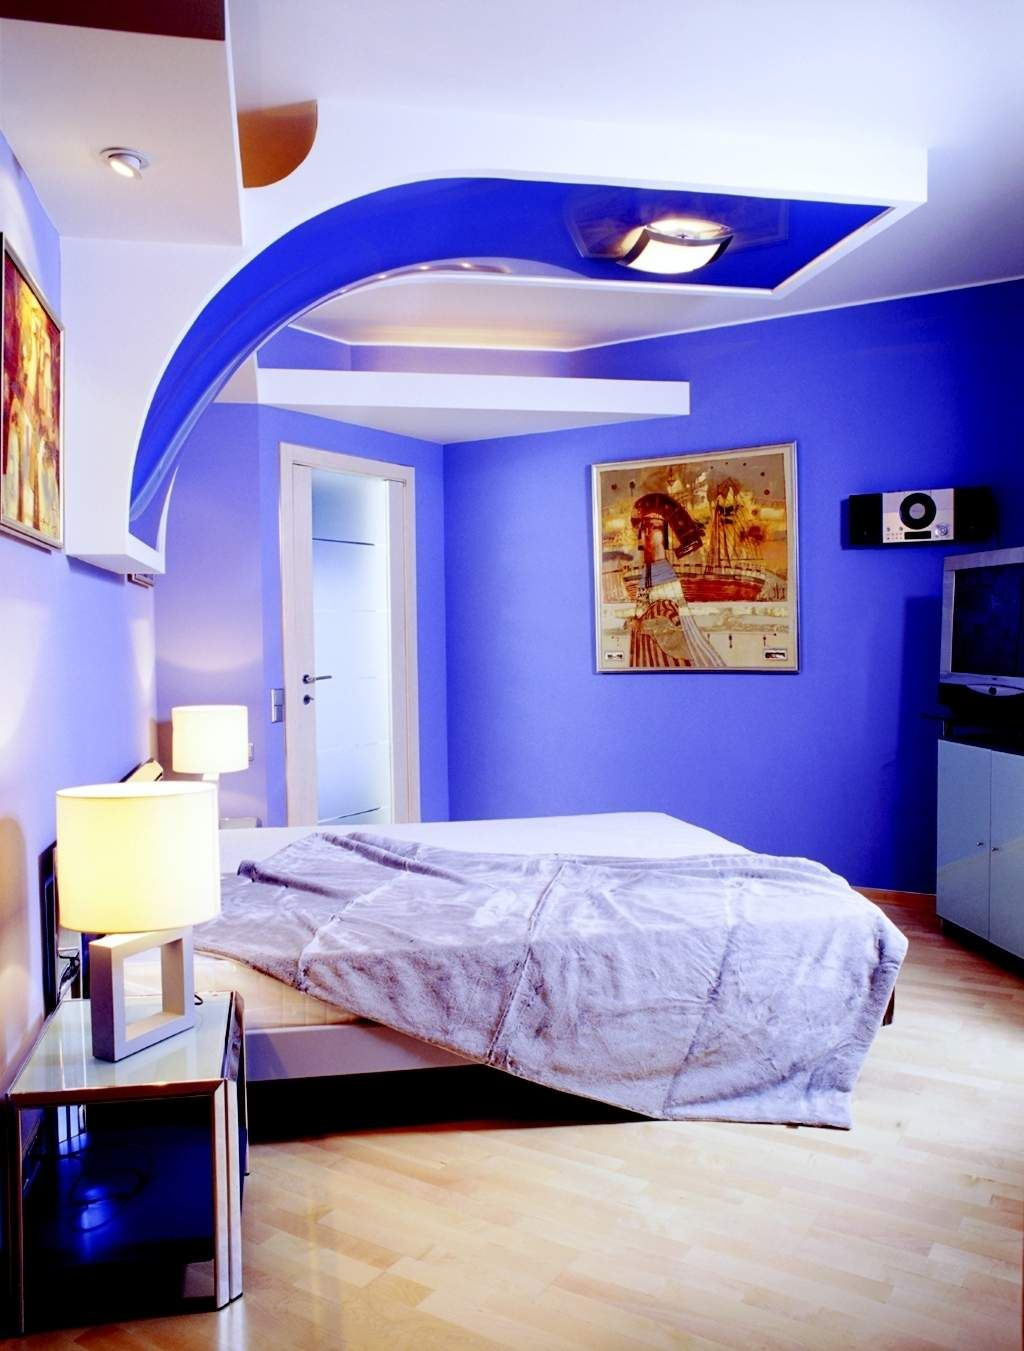 Kids Bedroom Futuristic Design Of Boys Bedroom In Bright Blue And